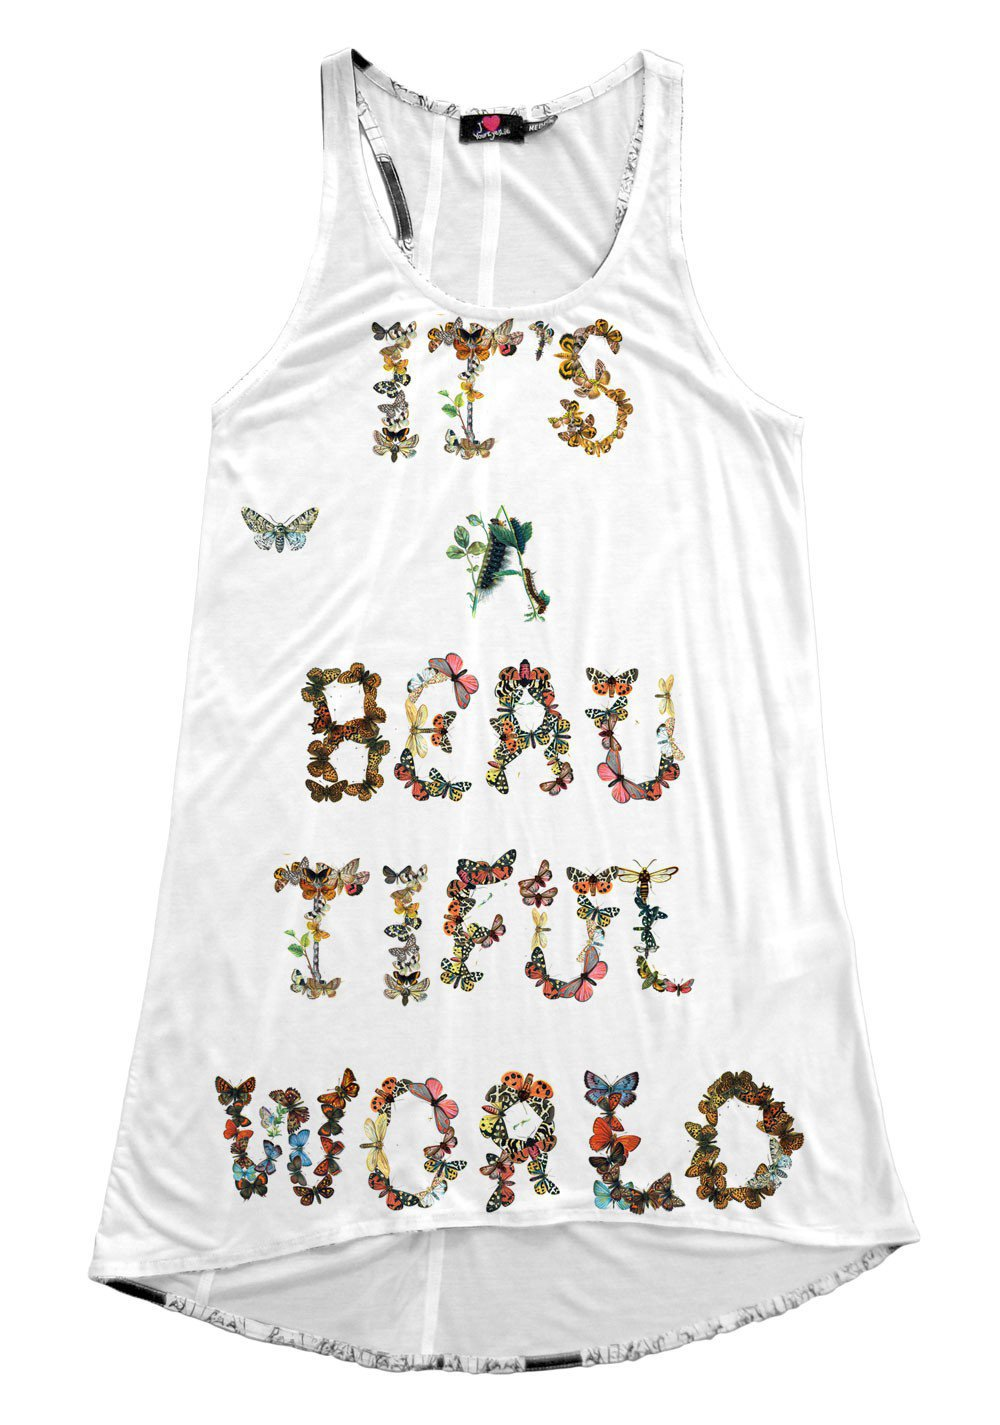 Buttergated vest dress - DRESSES - WOMEN Online store> Shop the collection